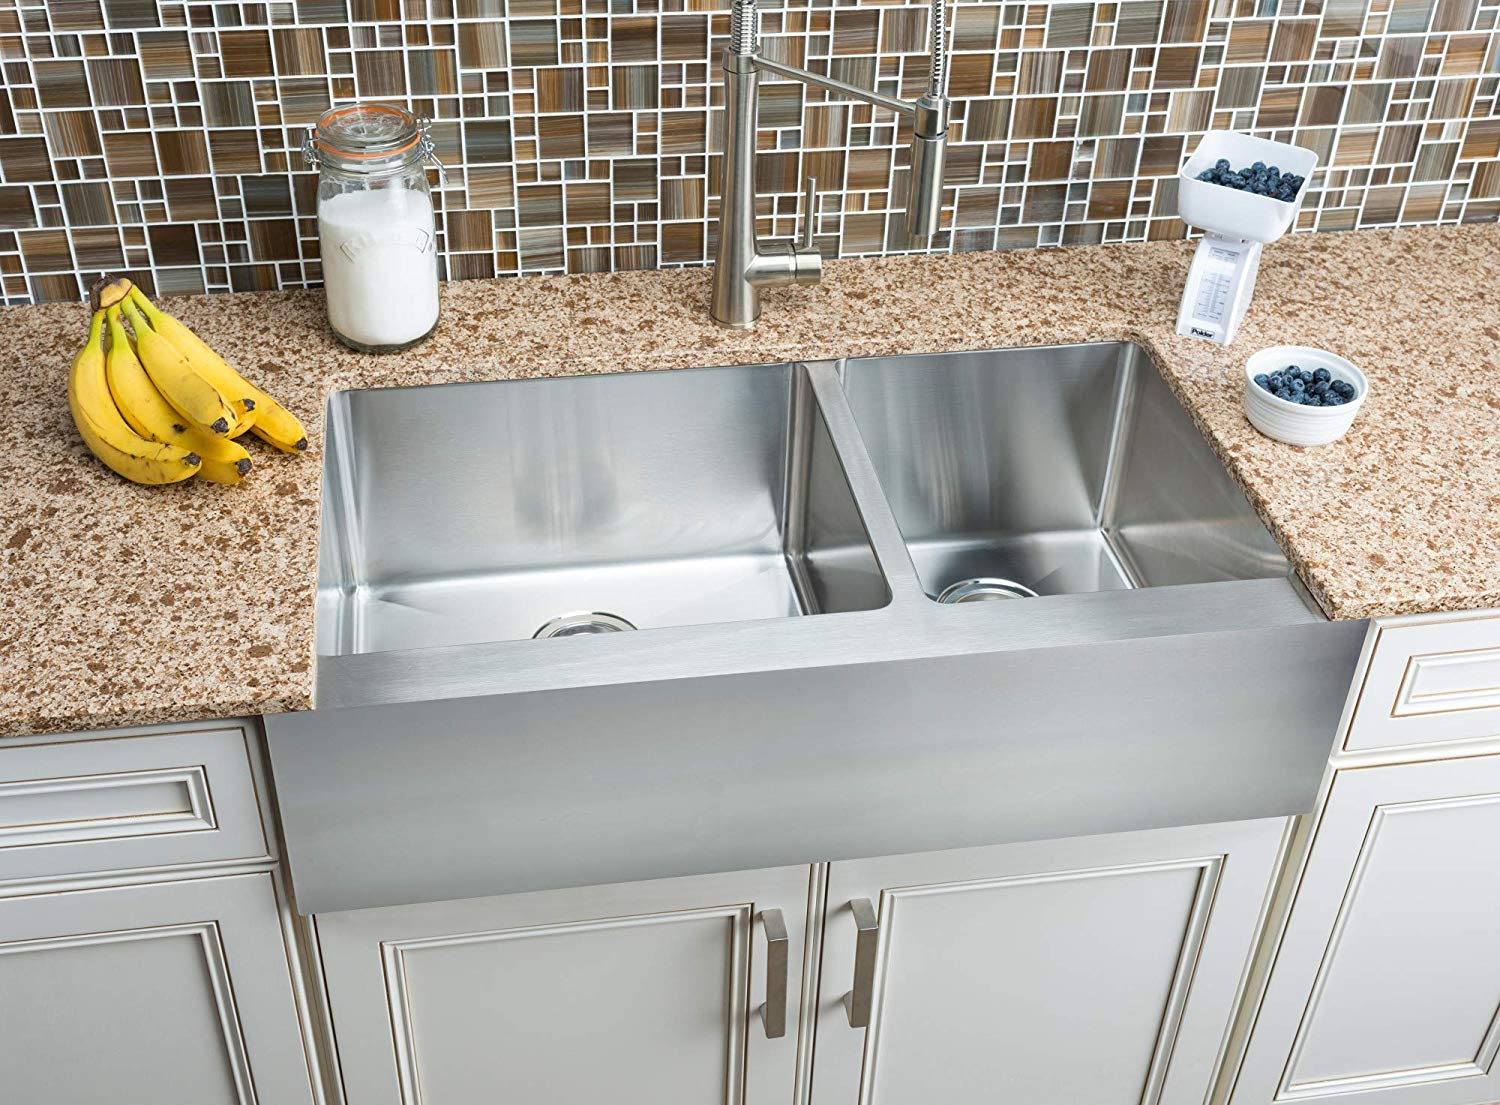 Farmhouse Sinks Are A Design Trend Toward Utility And Old World